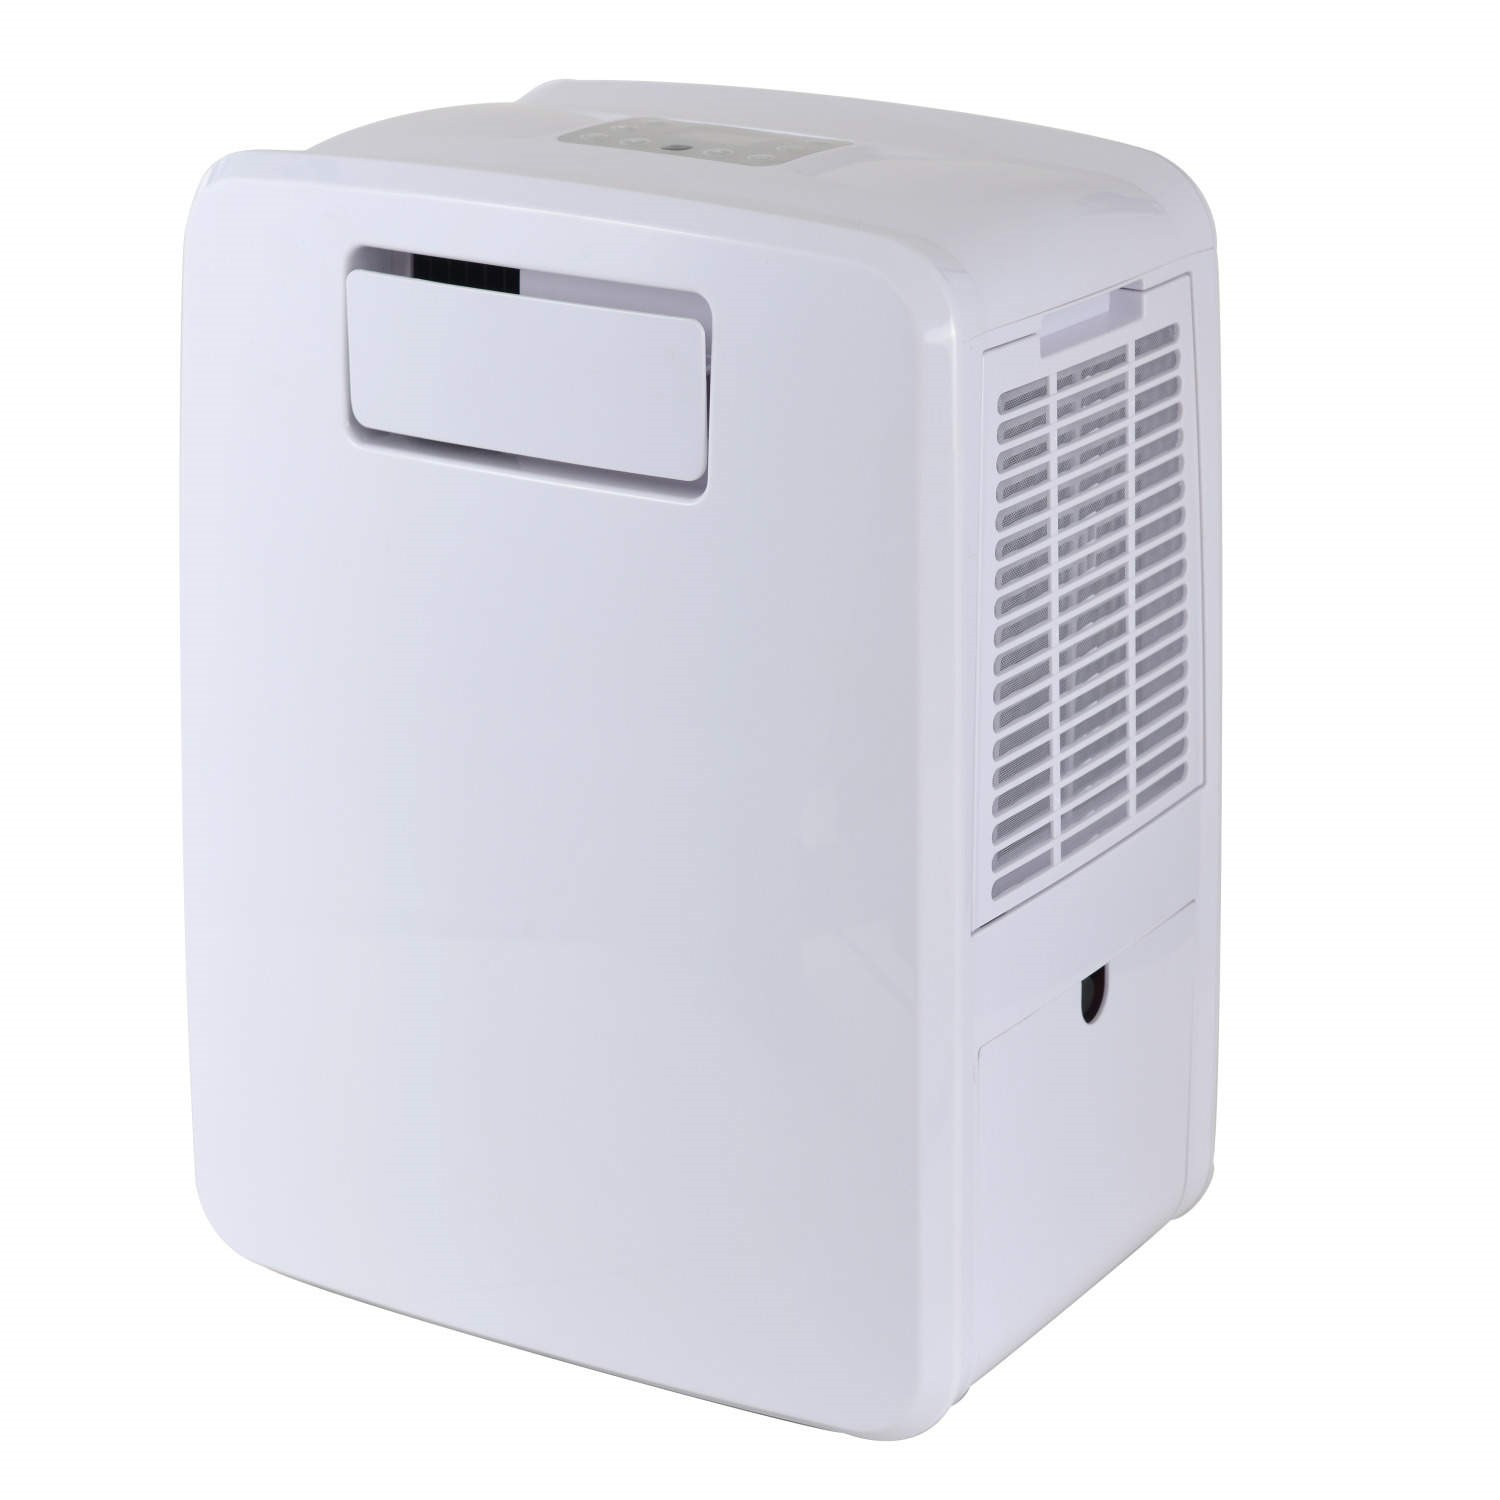 Grade a2 smallest air conditioner ideal for very small for Small 1 room air conditioner